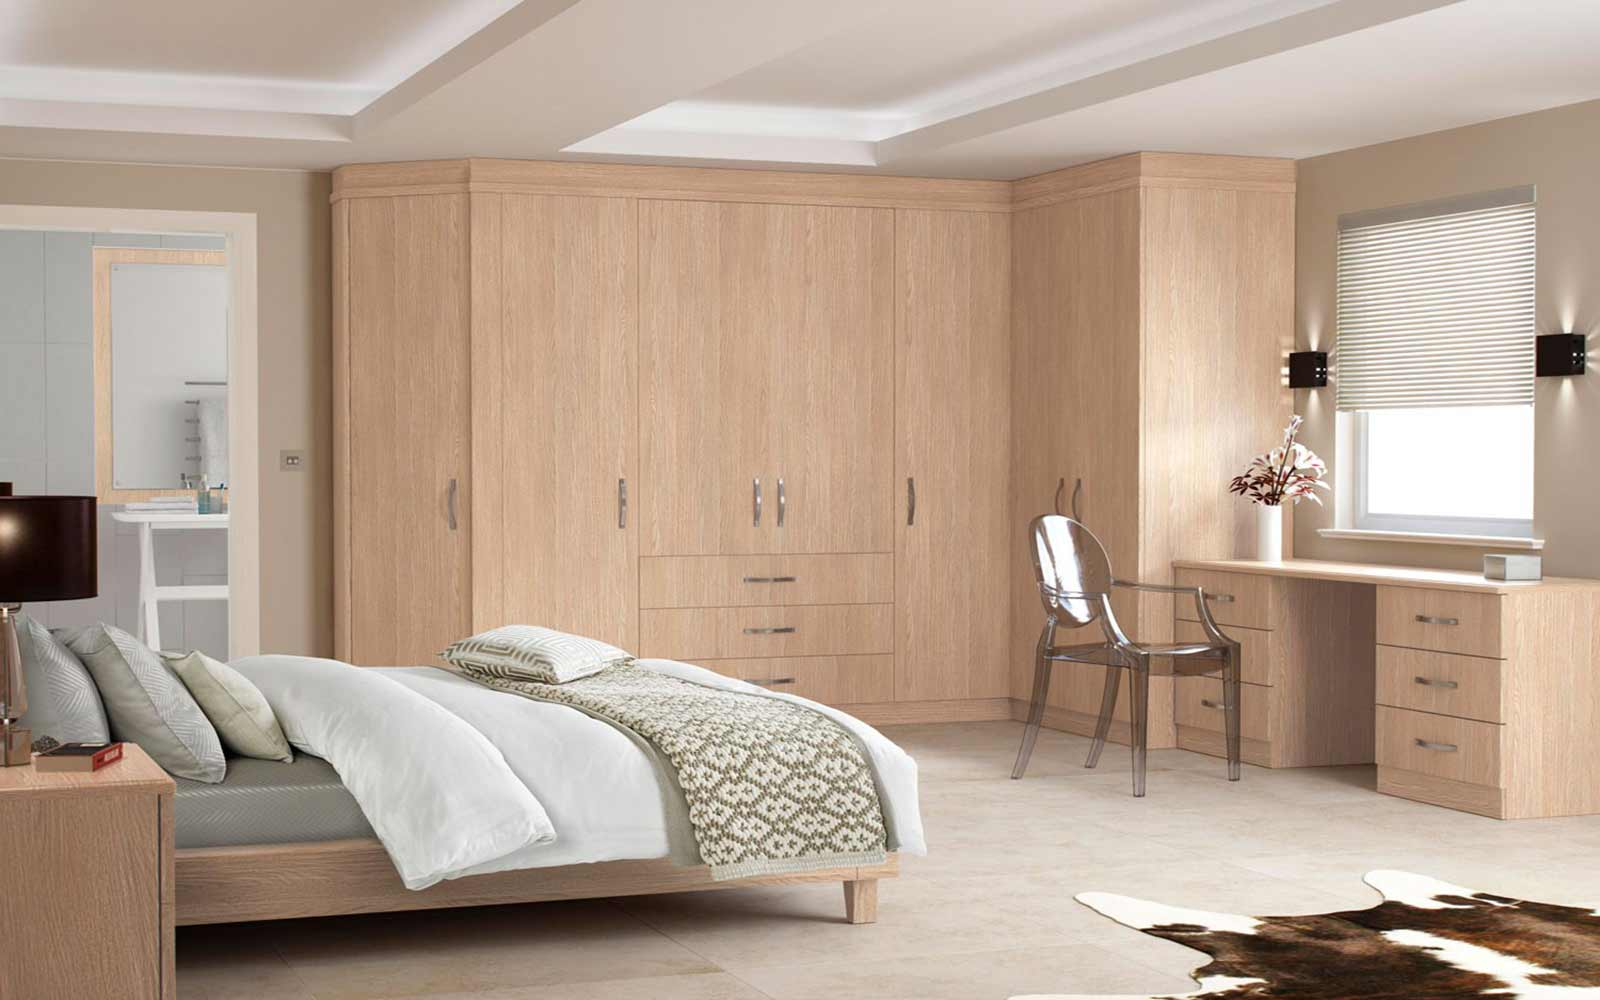 Walkin wardrobes in delhi india walking wardrobe for Bedroom ideas next